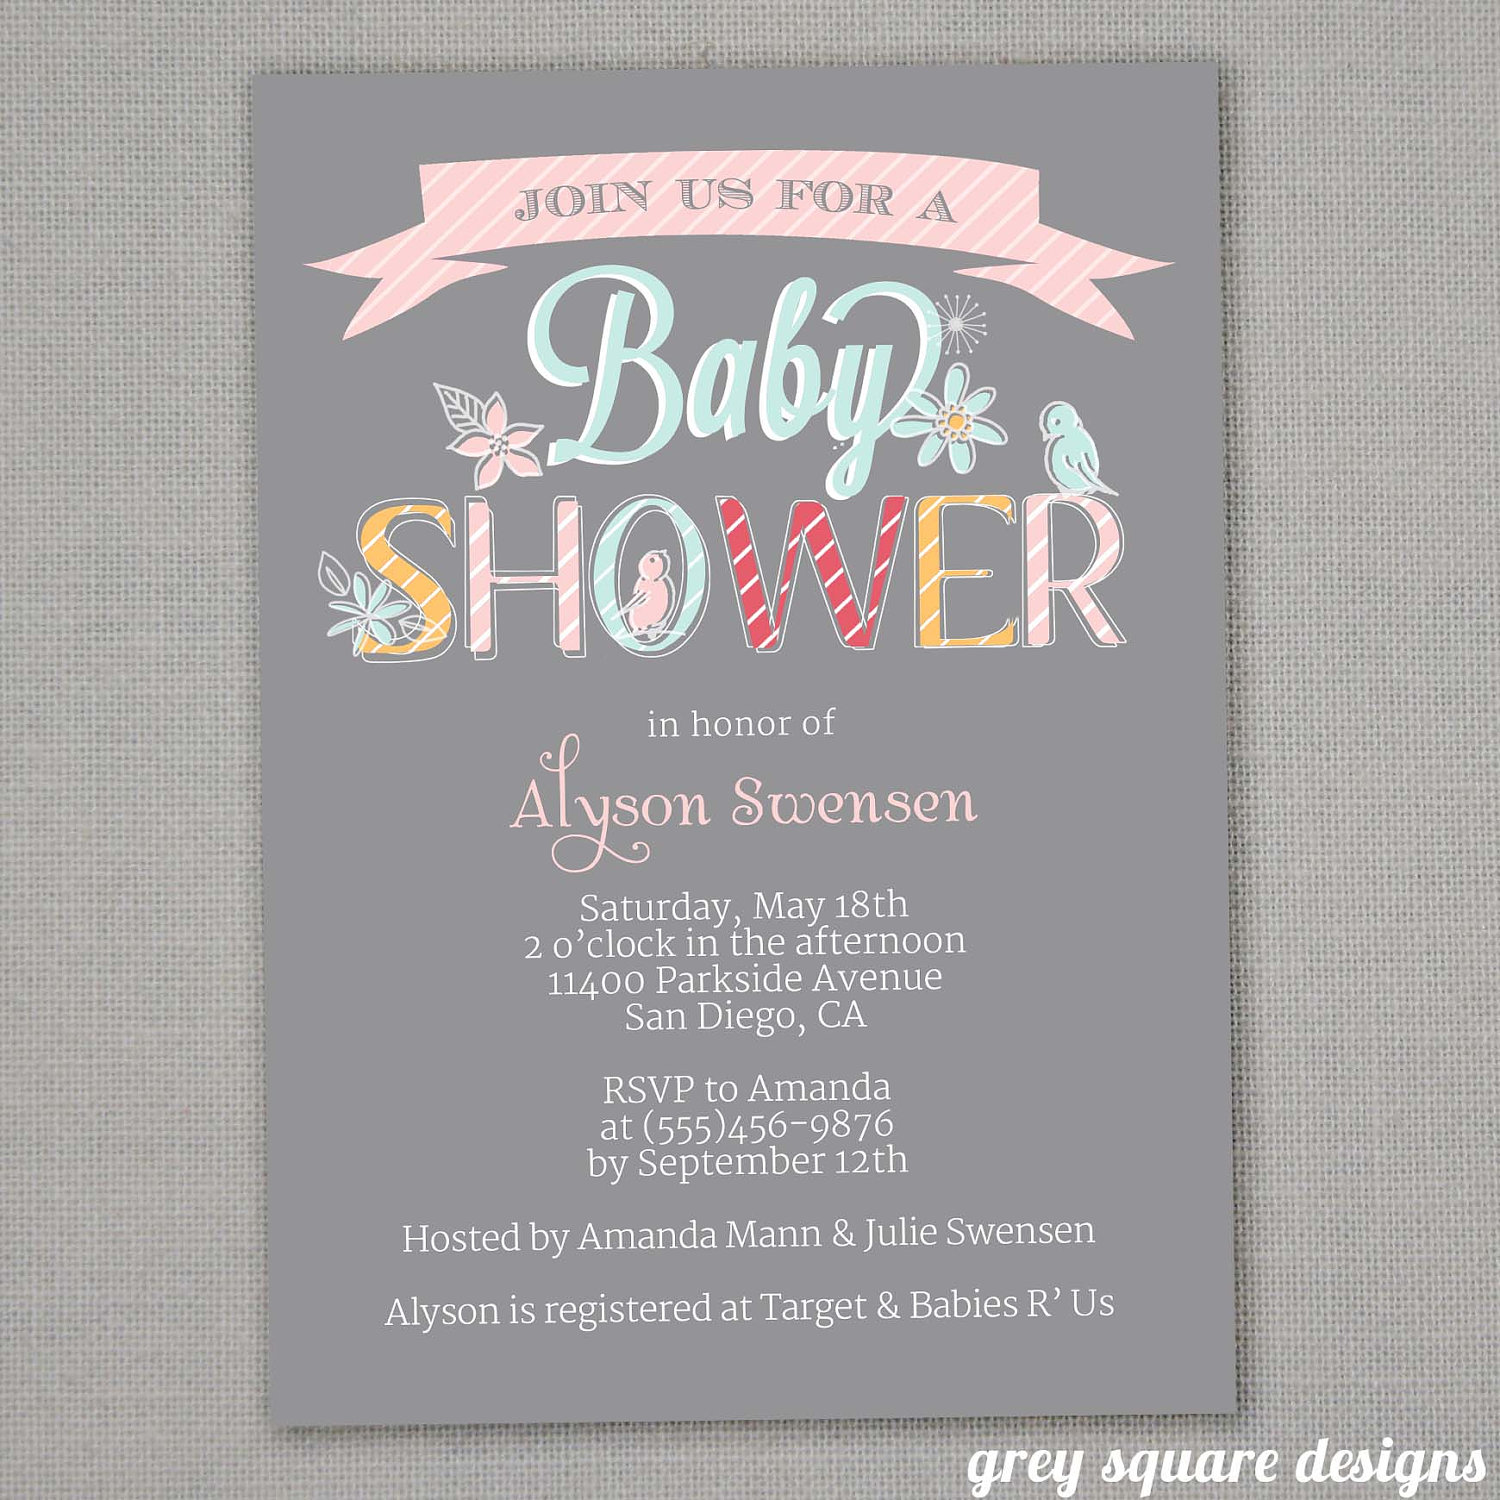 Full Size of Baby Shower:stylish Baby Shower Wishes Picture Inspirations Baby Shower Wreath With Baby Shower Gifts For Girls Plus Arreglos Para Baby Shower Together With Baby Shower Bingo As Well As Baby Shower Rentals